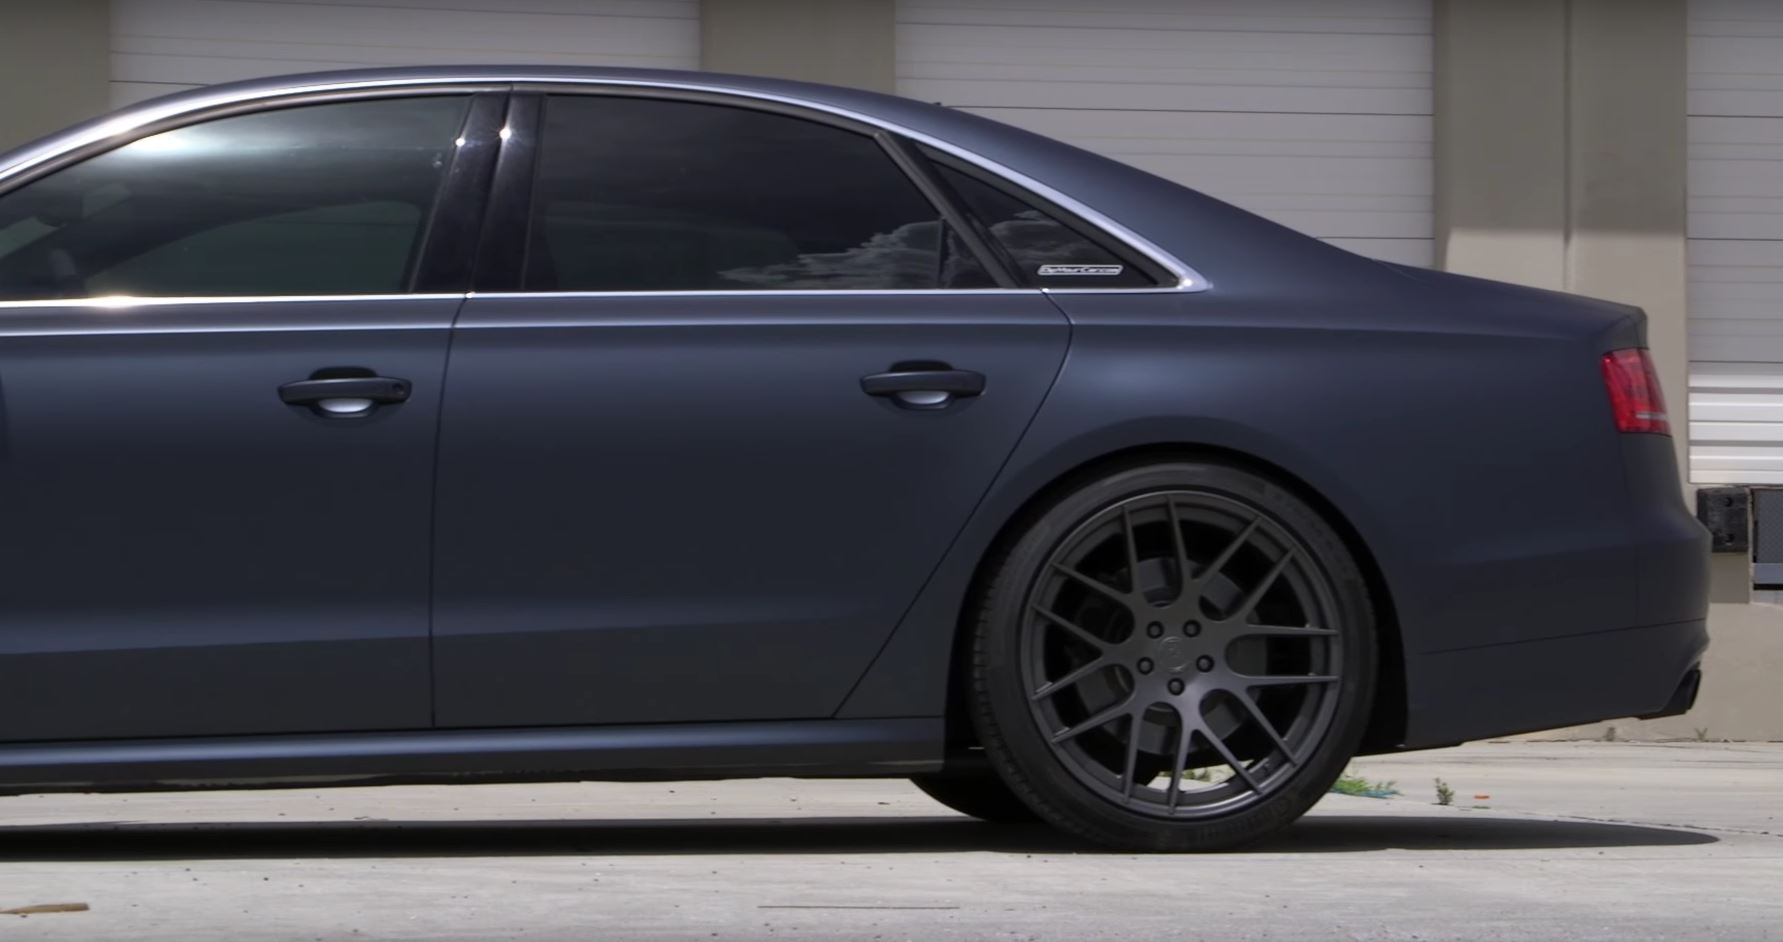 Audi S8 Goes Stealth with Steel Blue Plasti Dip Thanks to ...